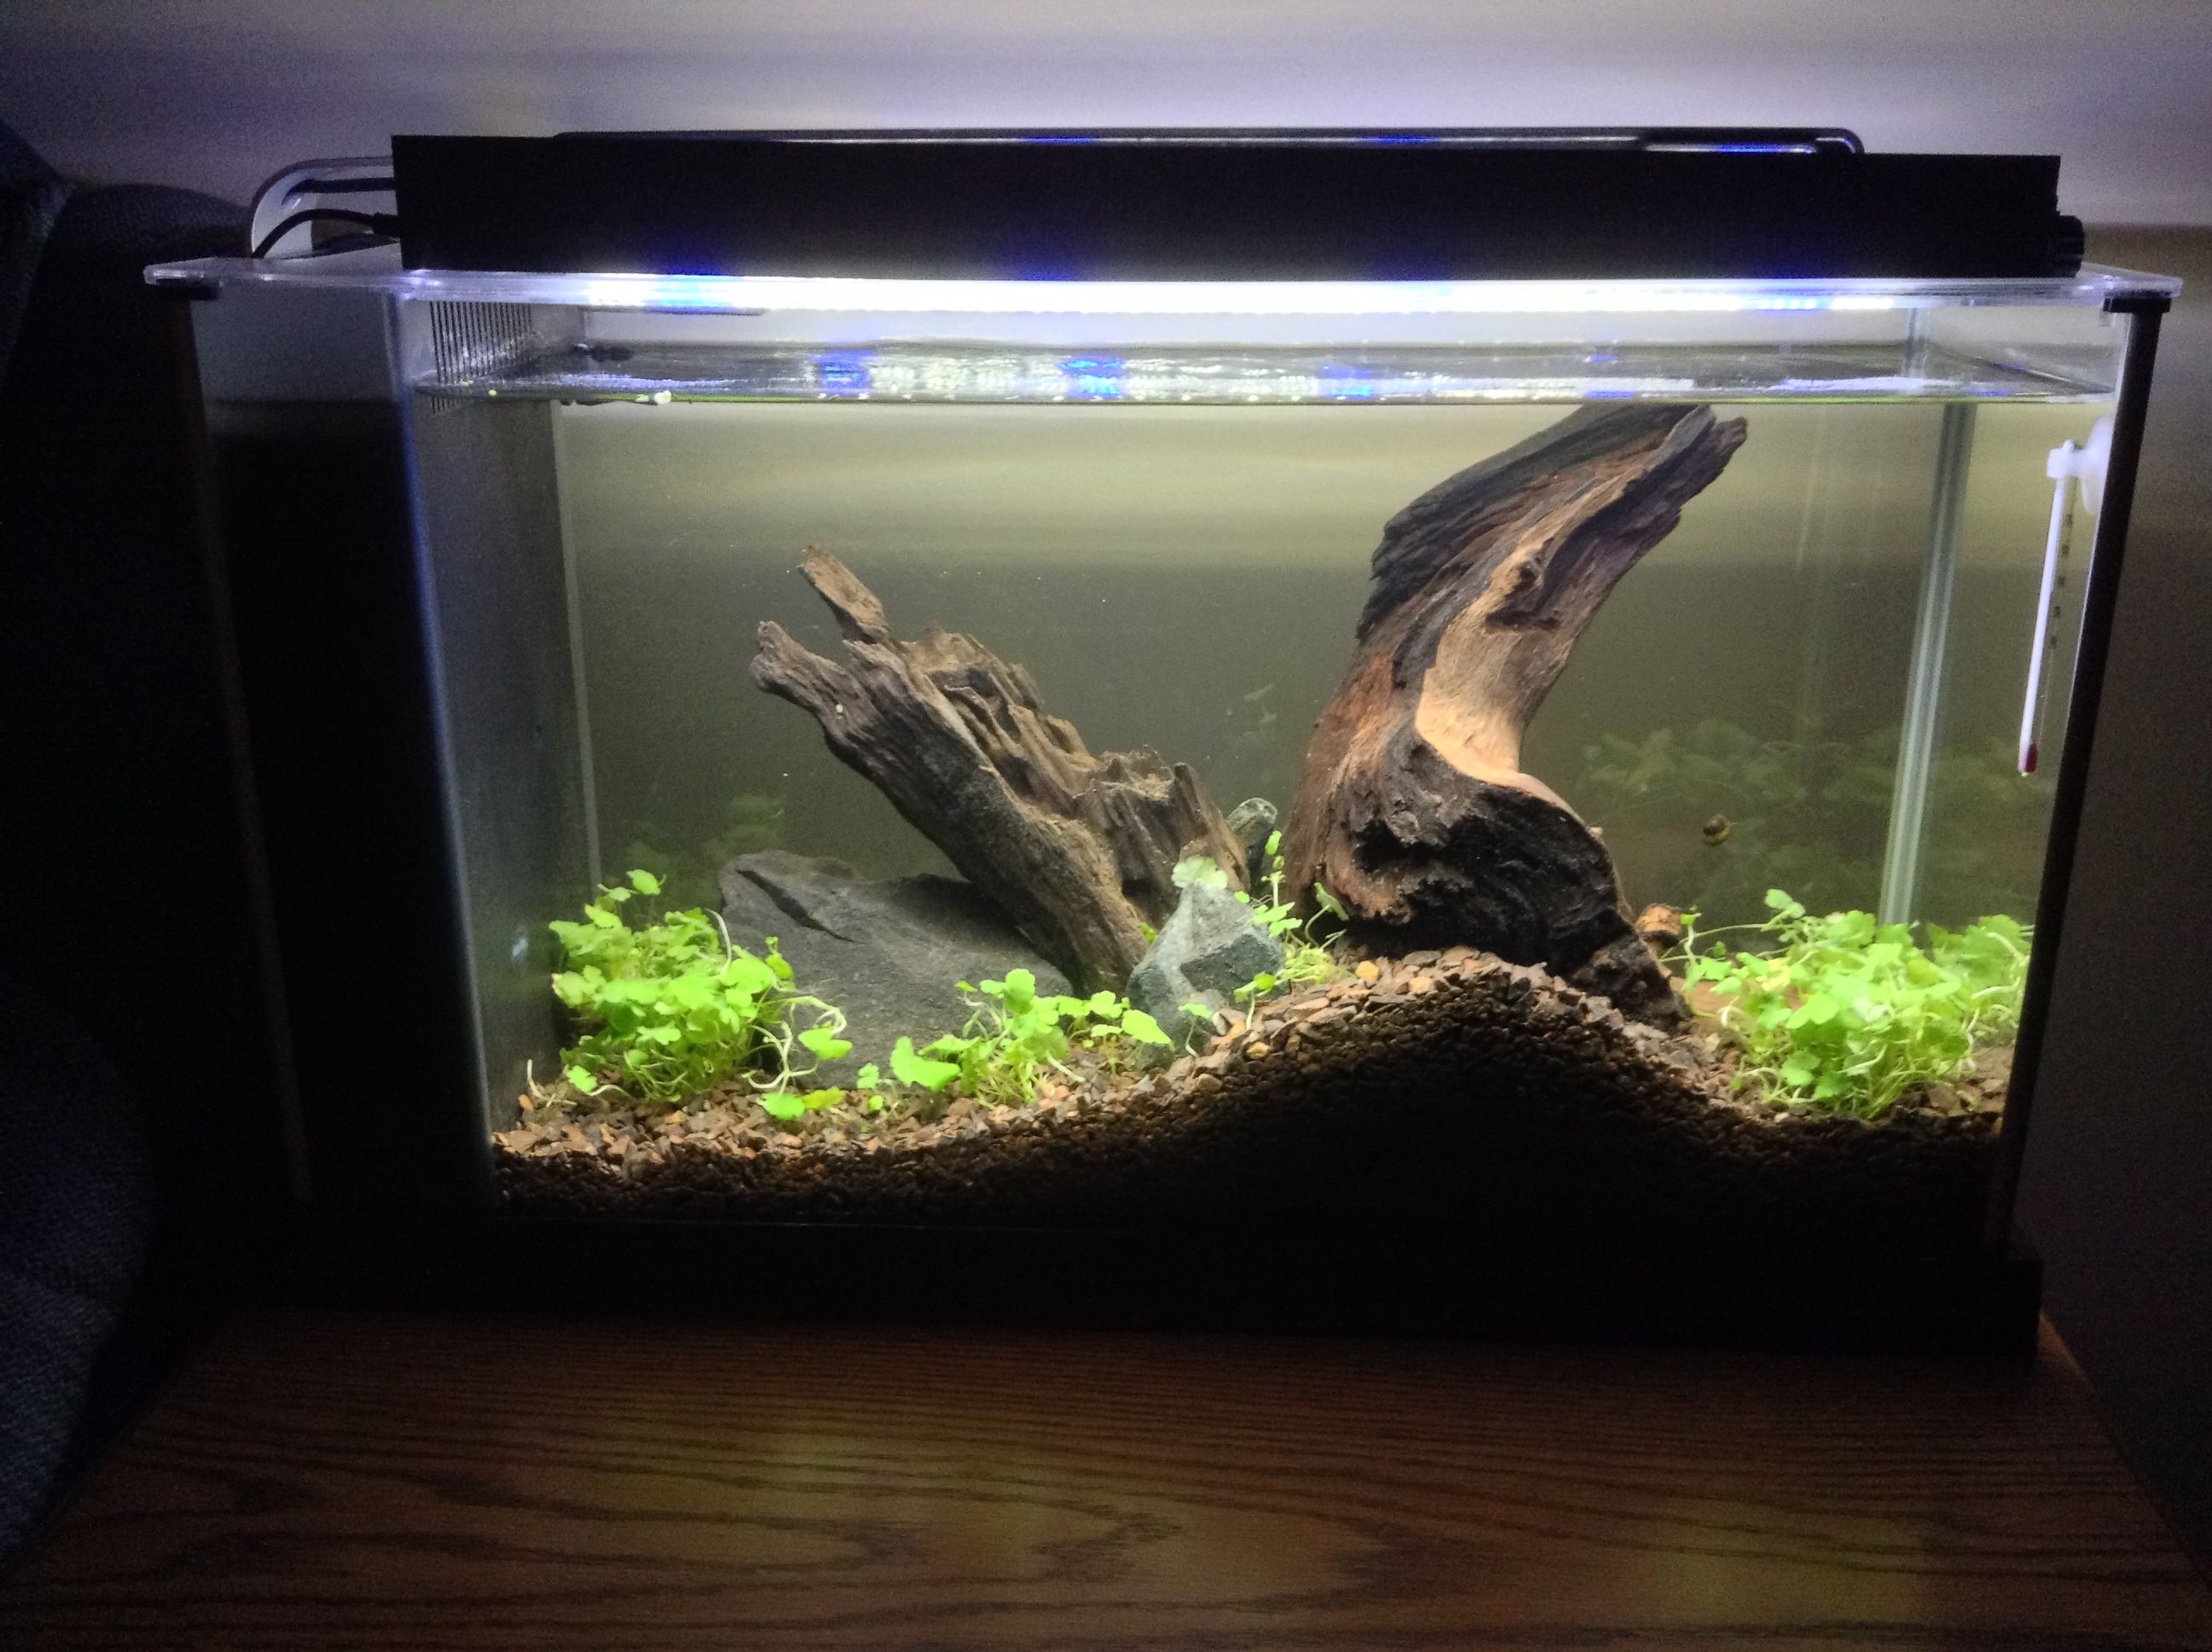 Fluval spec v with hydrocotyle sibthorpioides my own for Fluval fish tank